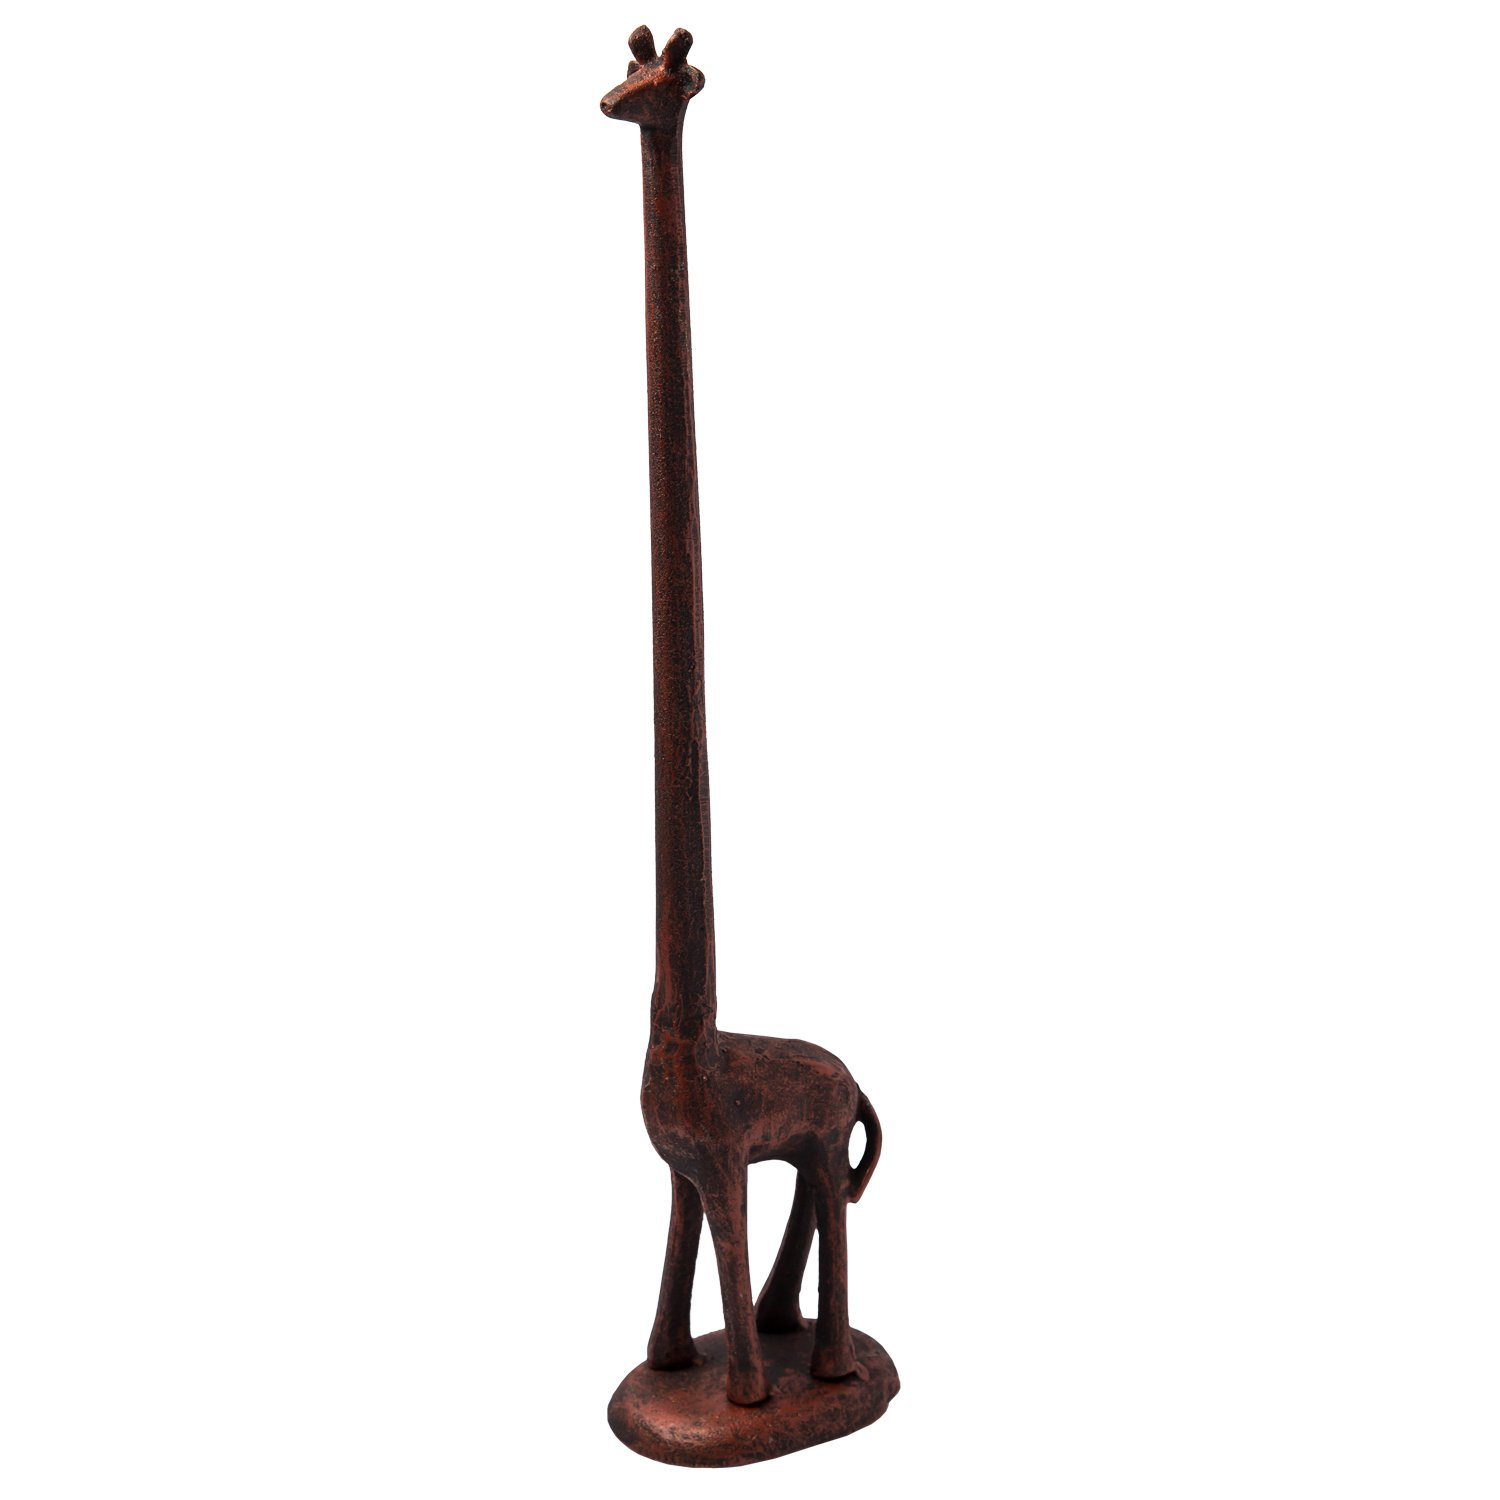 Paper Towel Holder or Free Standing Toilet Paper Holder- Cast Iron Giraffe Paper Holder - Bathroom Toilet Paper Holder or Stand Up Paper Towel Holder - Rustic Cooper w/Vintage Finish by Comfify